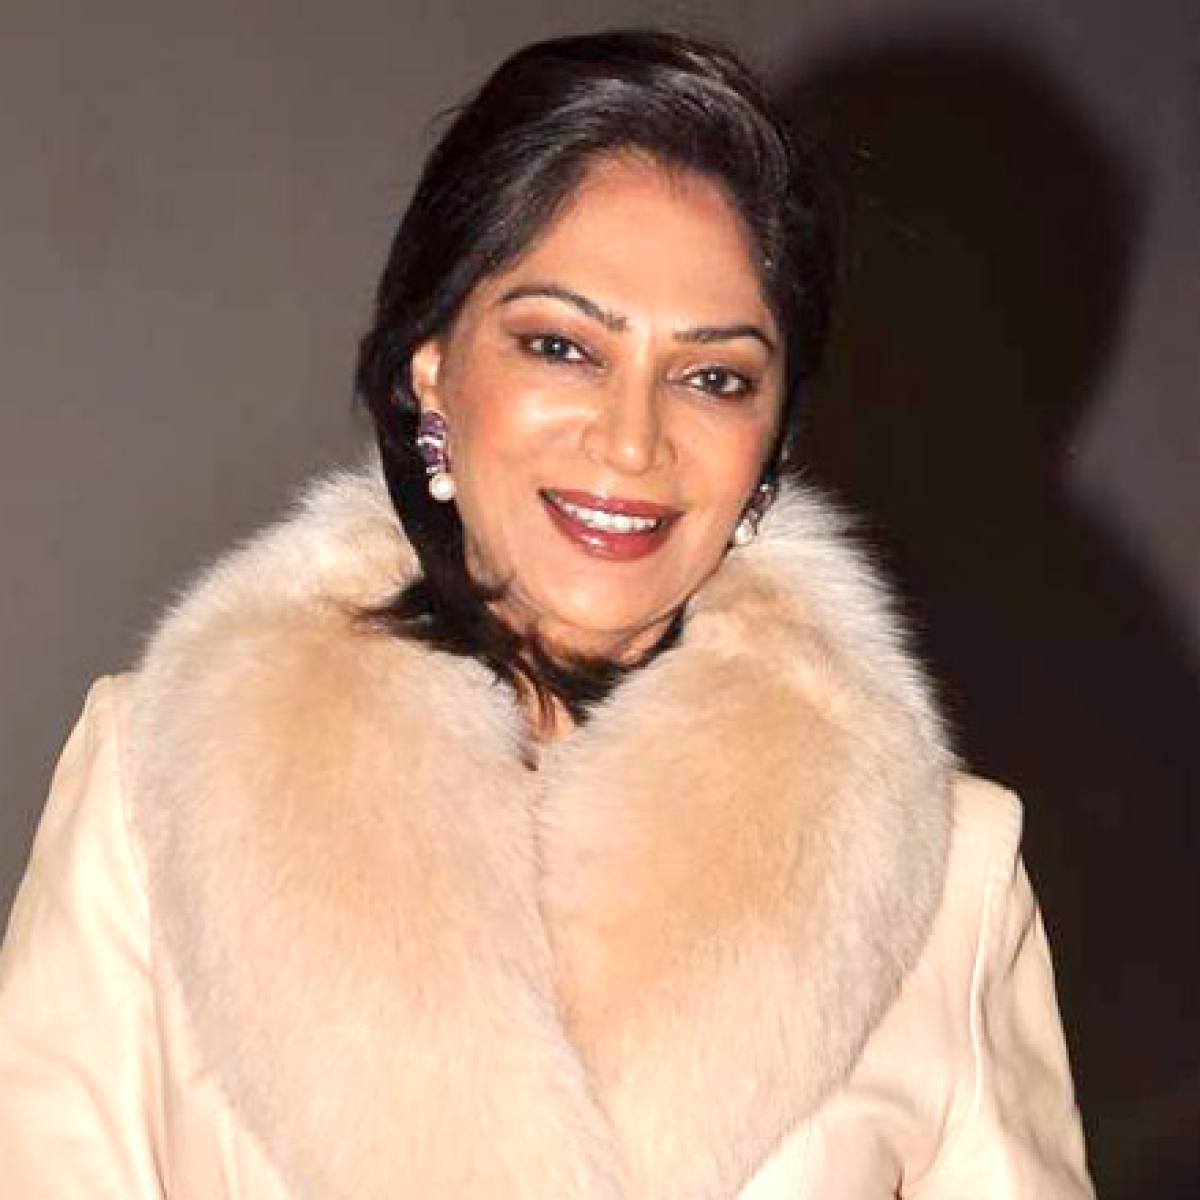 'Showed how much faith people have in Narendra Modi': Simi Garewal gets emotional as people clap during Janta Curfew